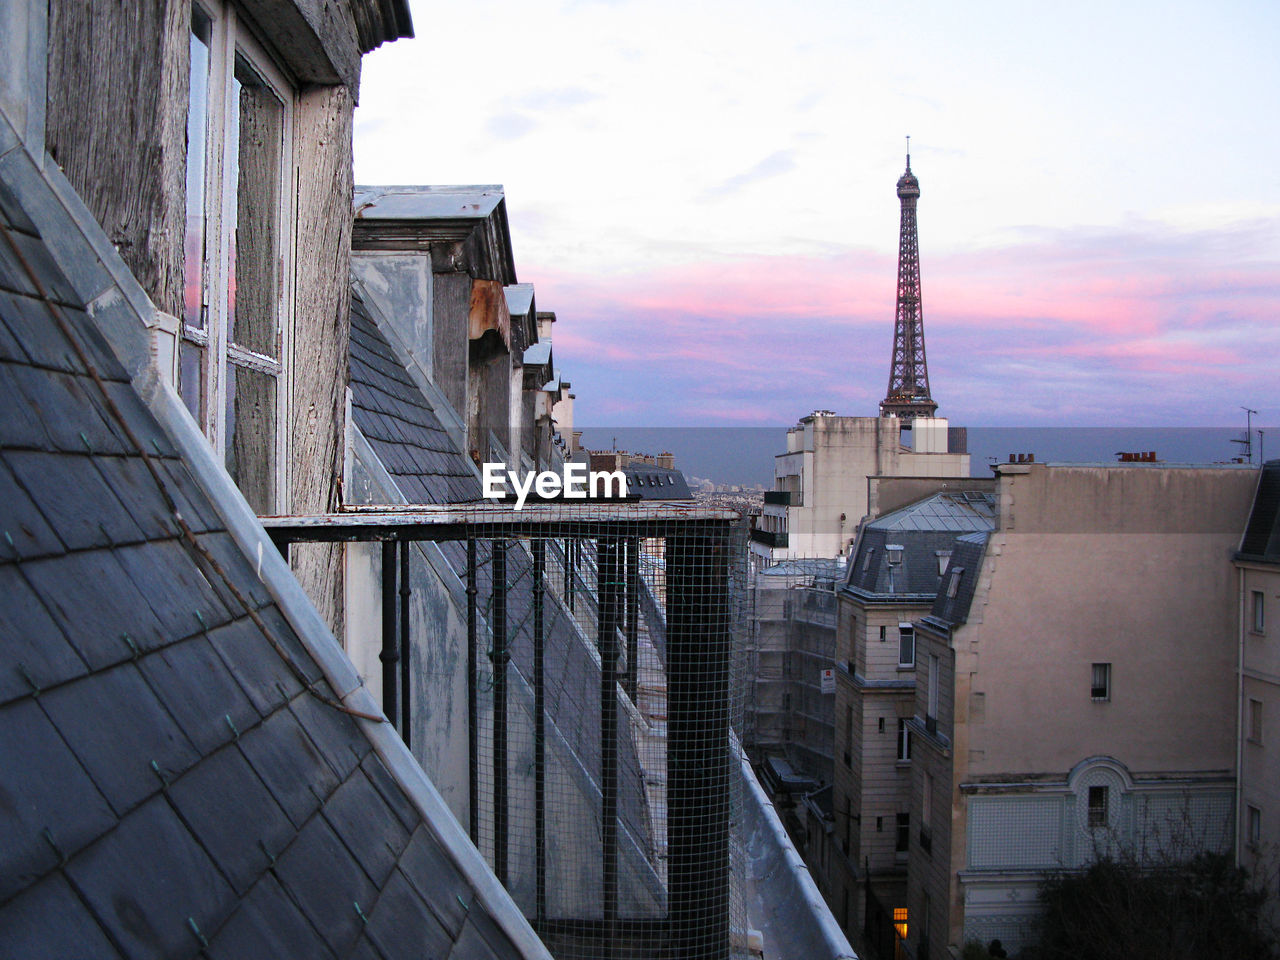 Distant View Of Eiffel Tower Amidst Buildings In City At Dusk